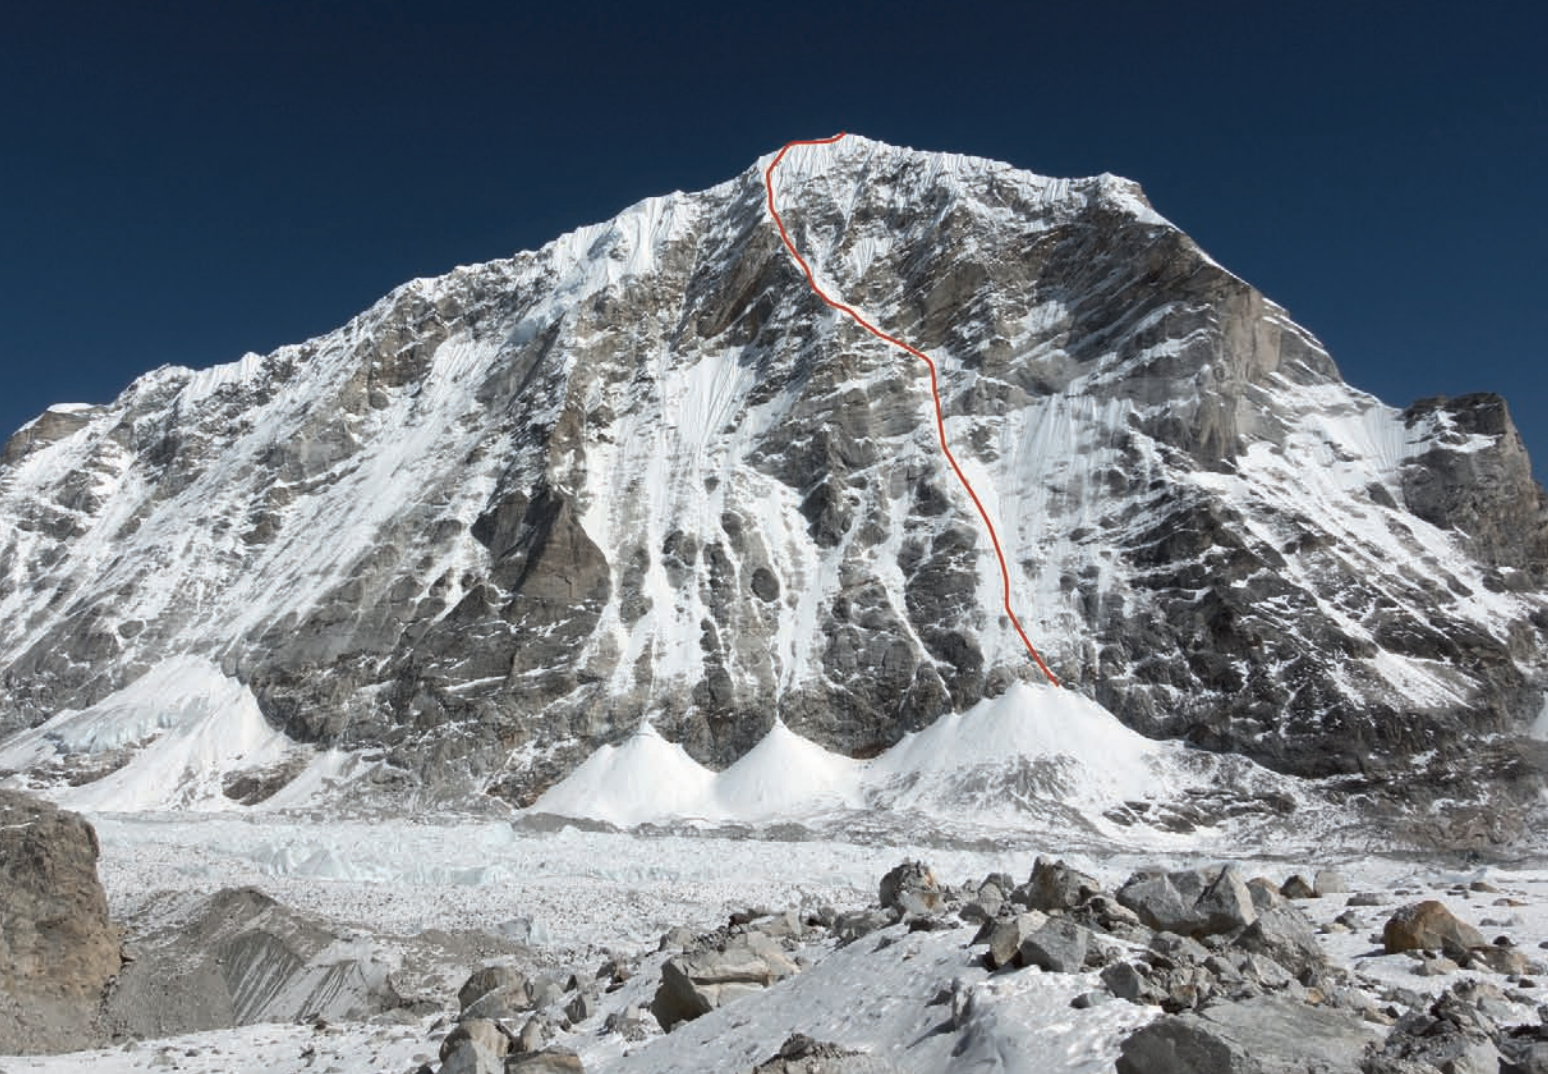 The first ascent of Tengi Rau Tau is one of the climbs that will be honored at the 2020 Piolets d'Or.